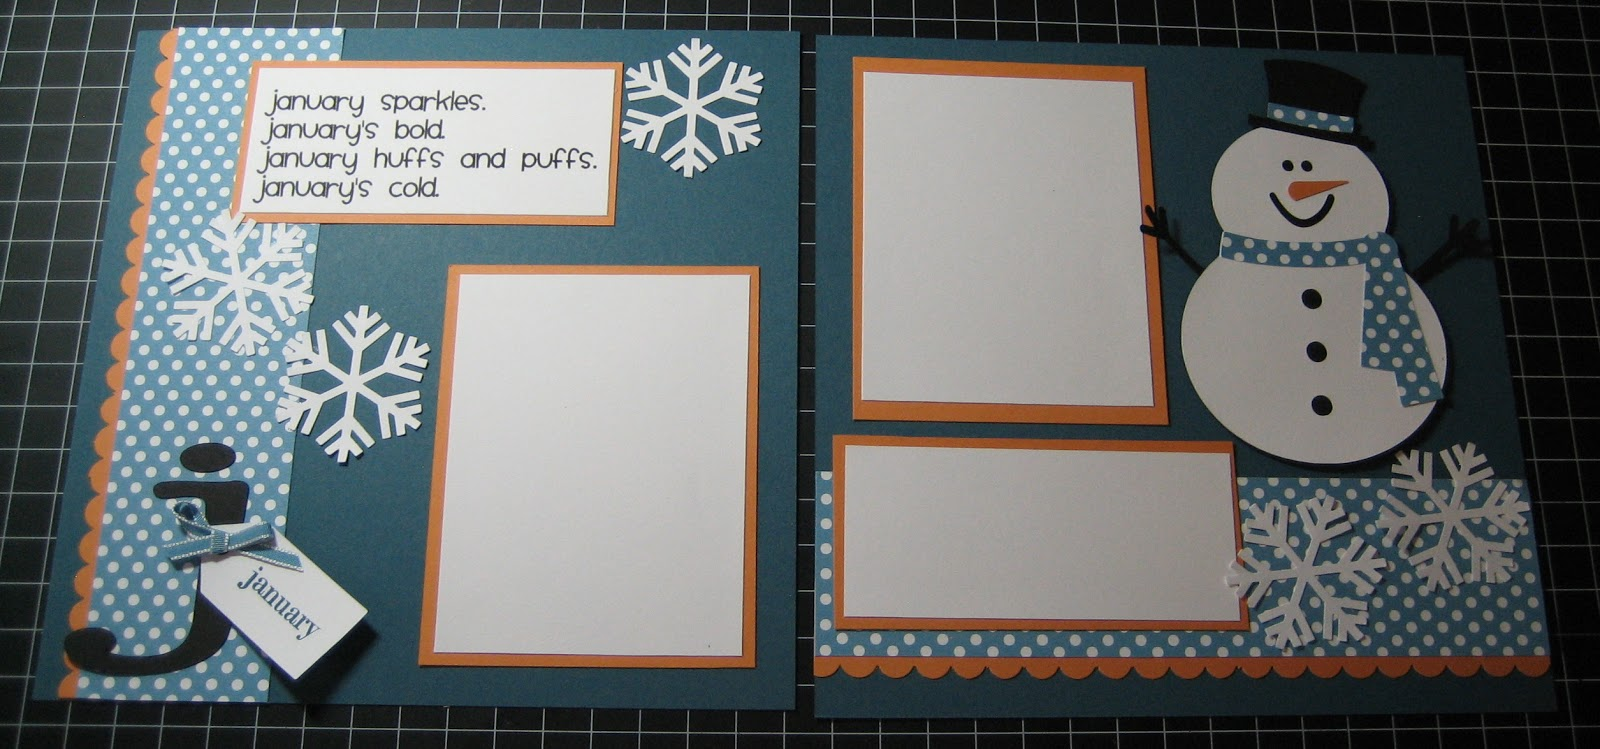 How to scrapbook 8x8 layouts - How To Scrapbook 8x8 Layouts 82